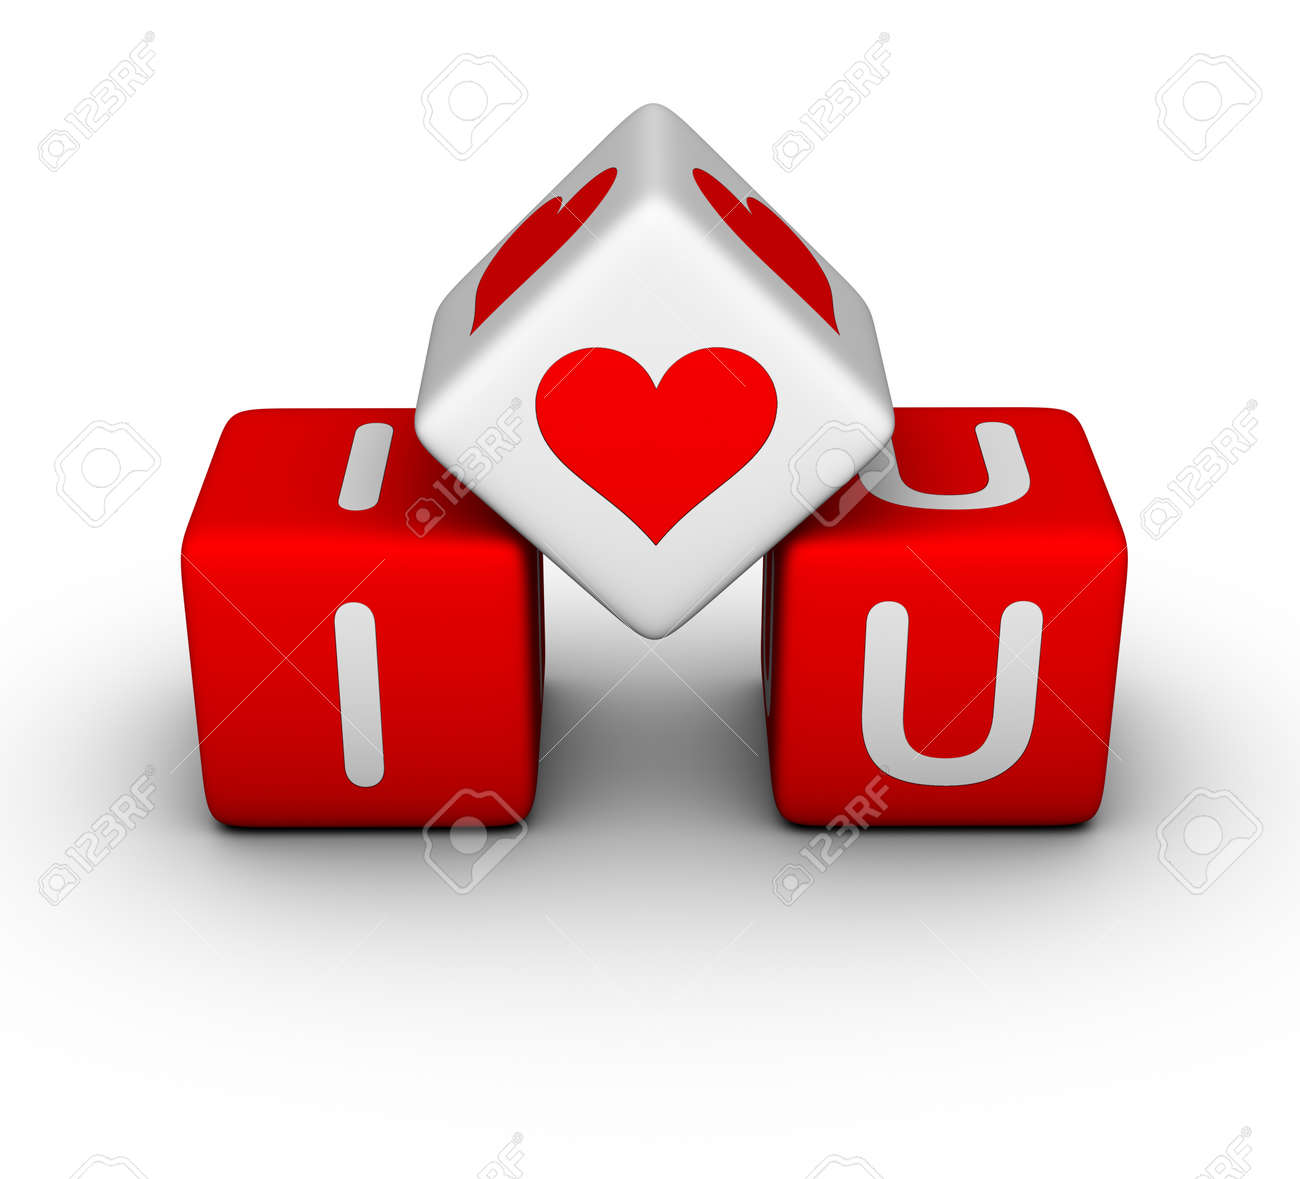 i love you (valentines day symbol) stock photo, picture and royalty